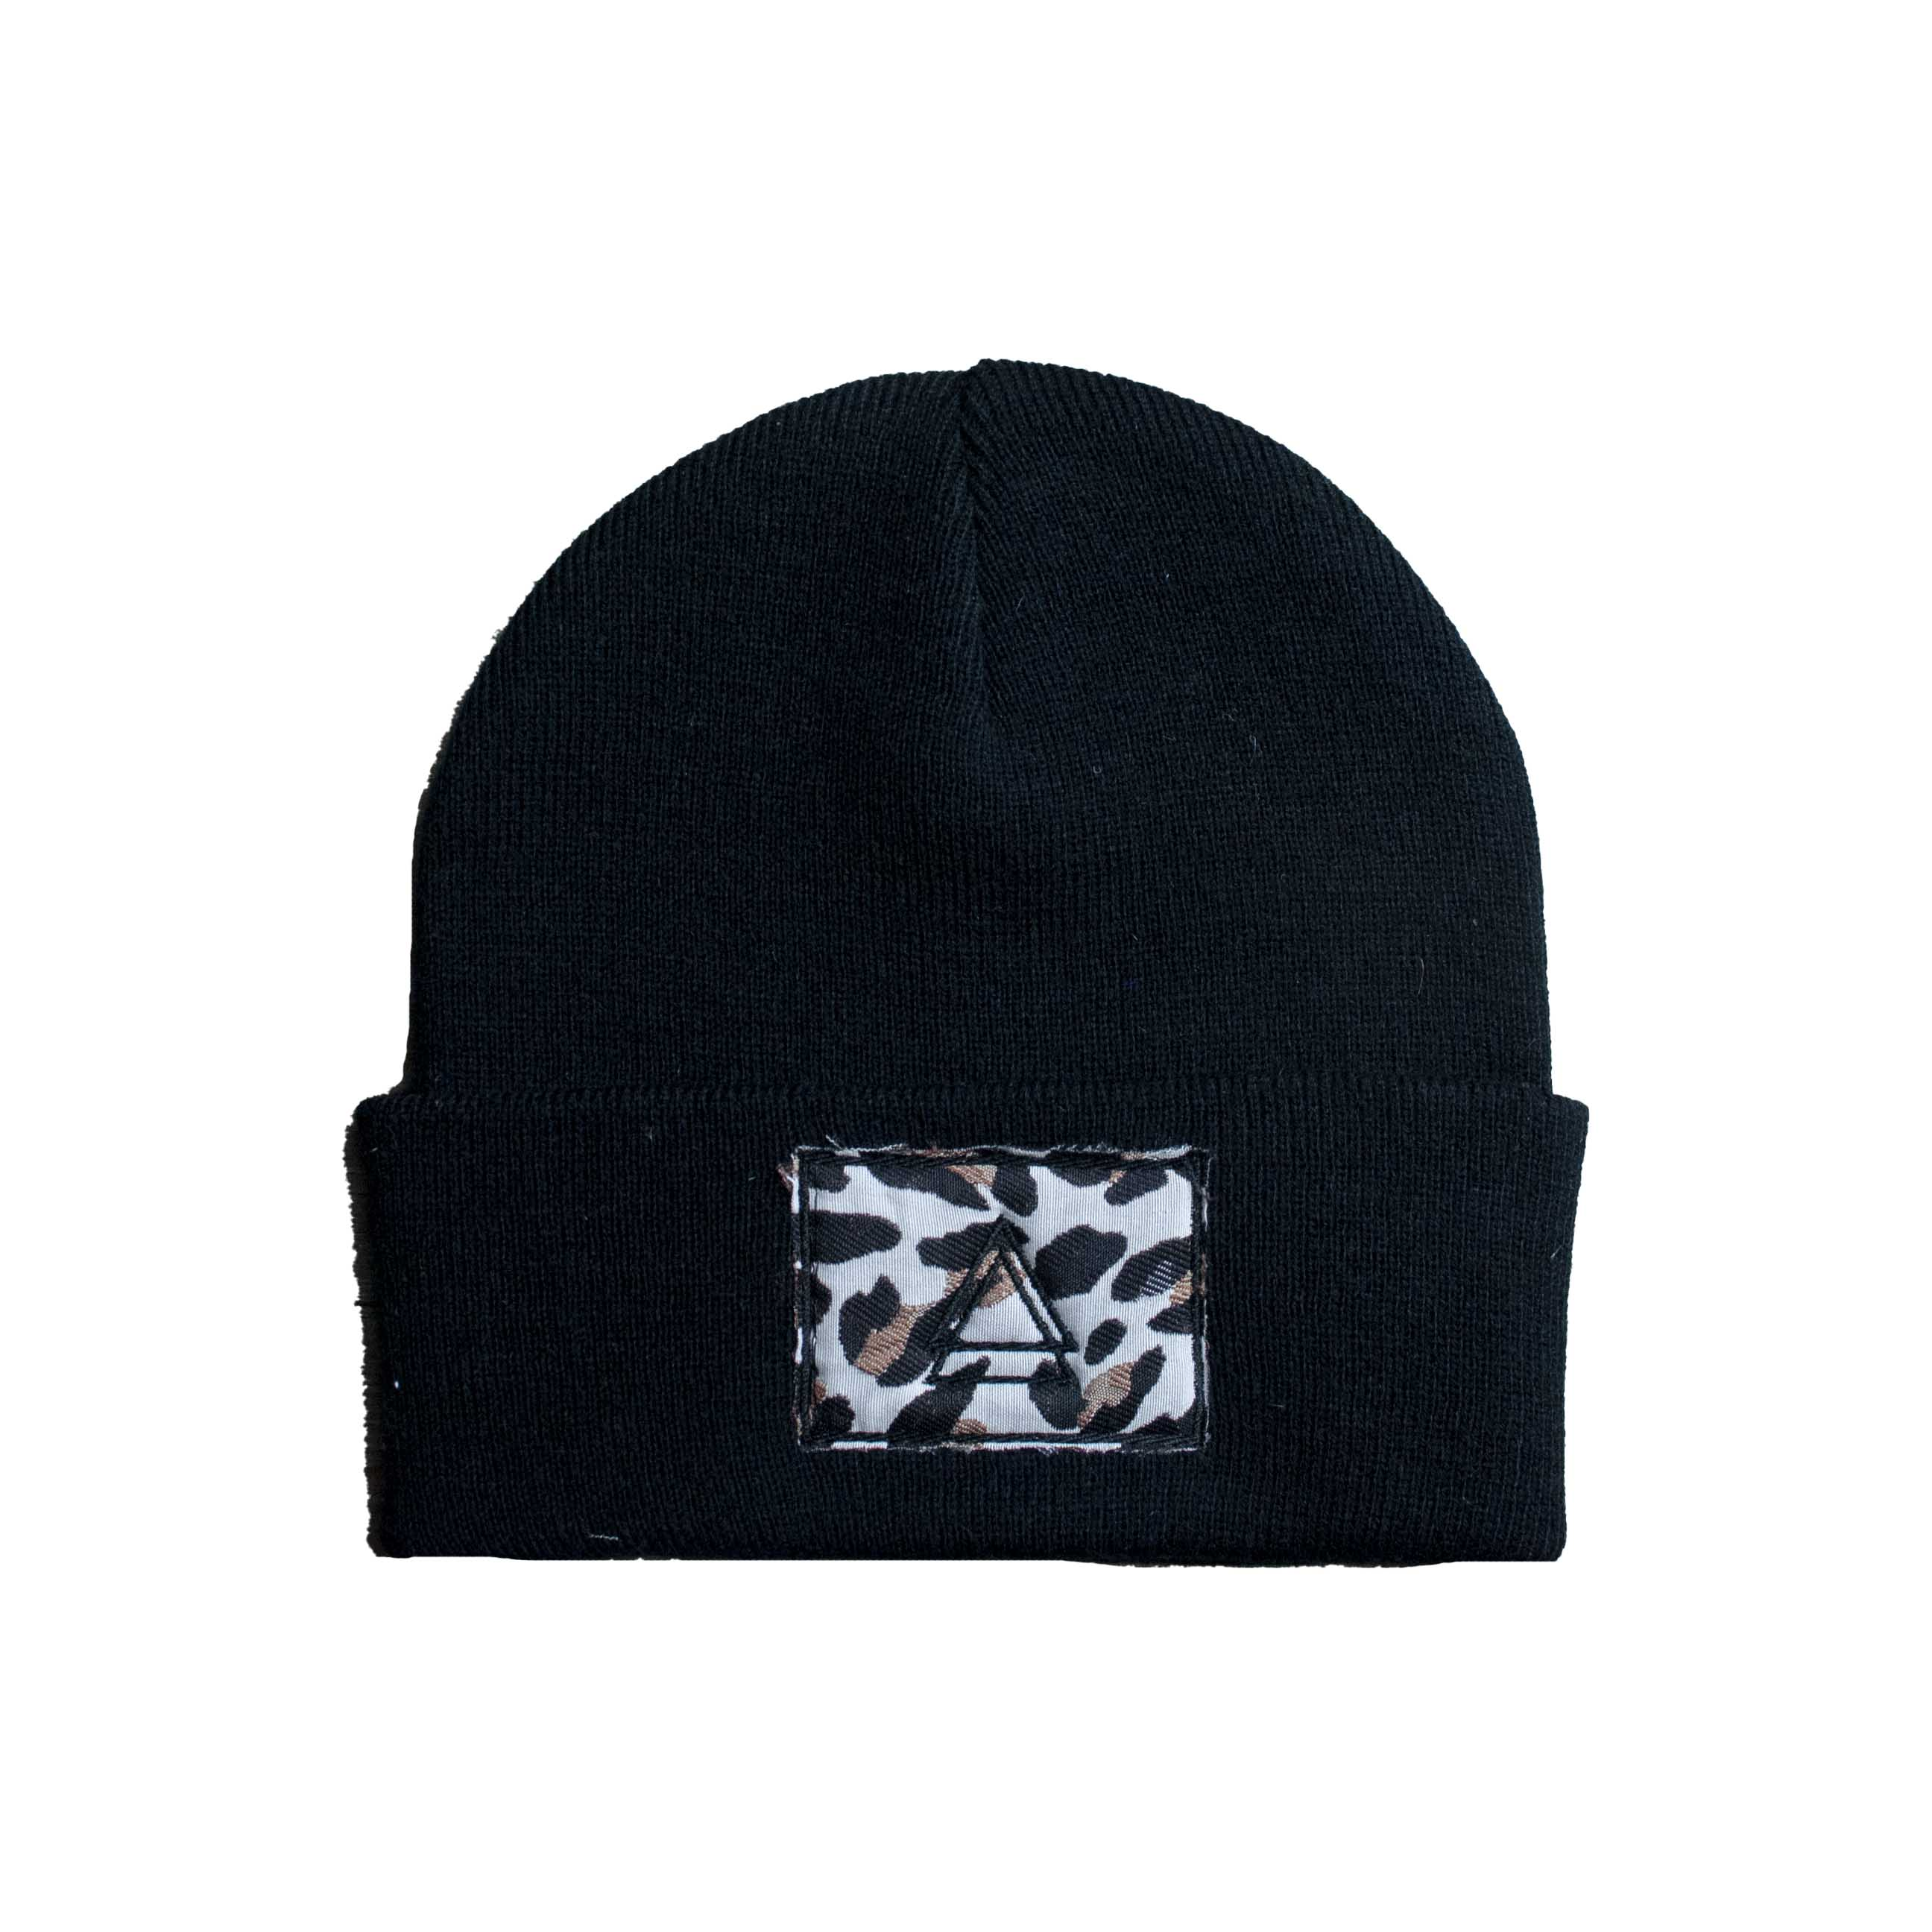 beanies (private enquiry)